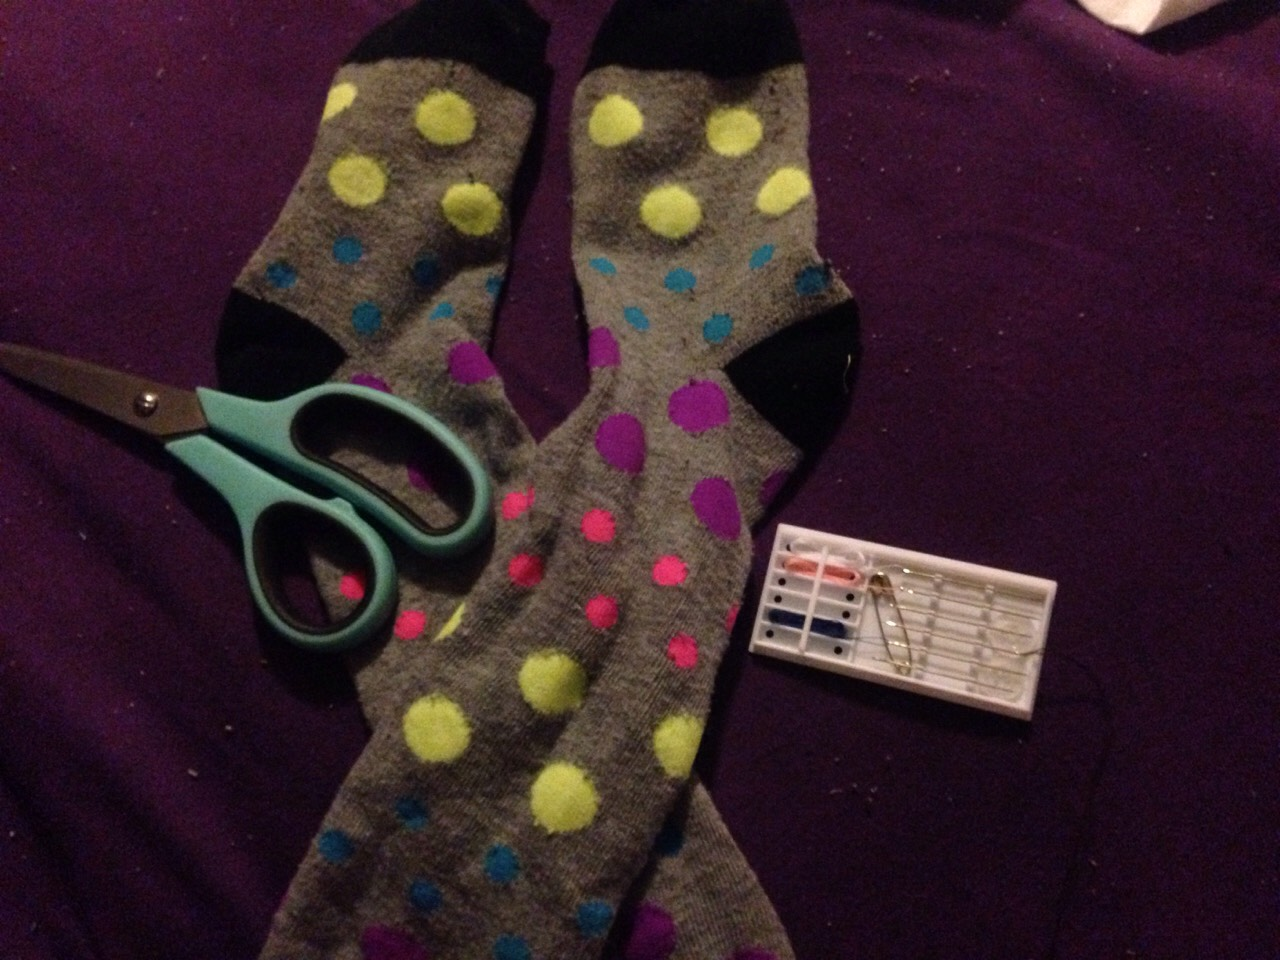 All you need is a pair of socs, scissors, needle and thread